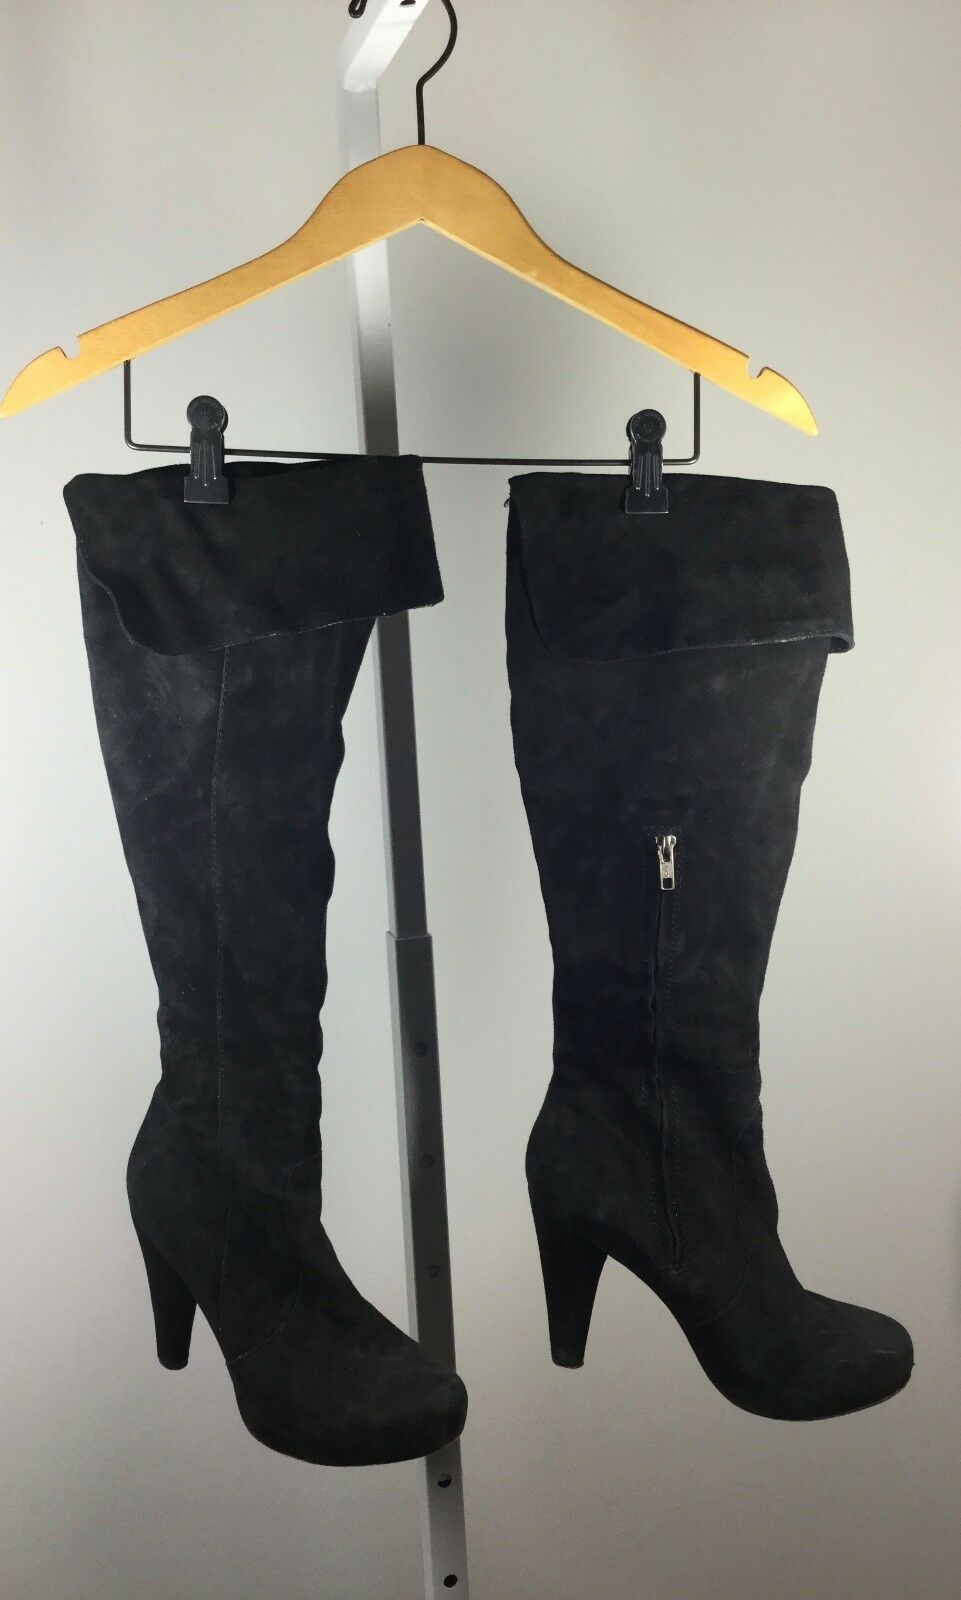 CYNTHIA VINCENT Black Suede High Roll Down Platform Knee High Suede Boot Size 7 1db417